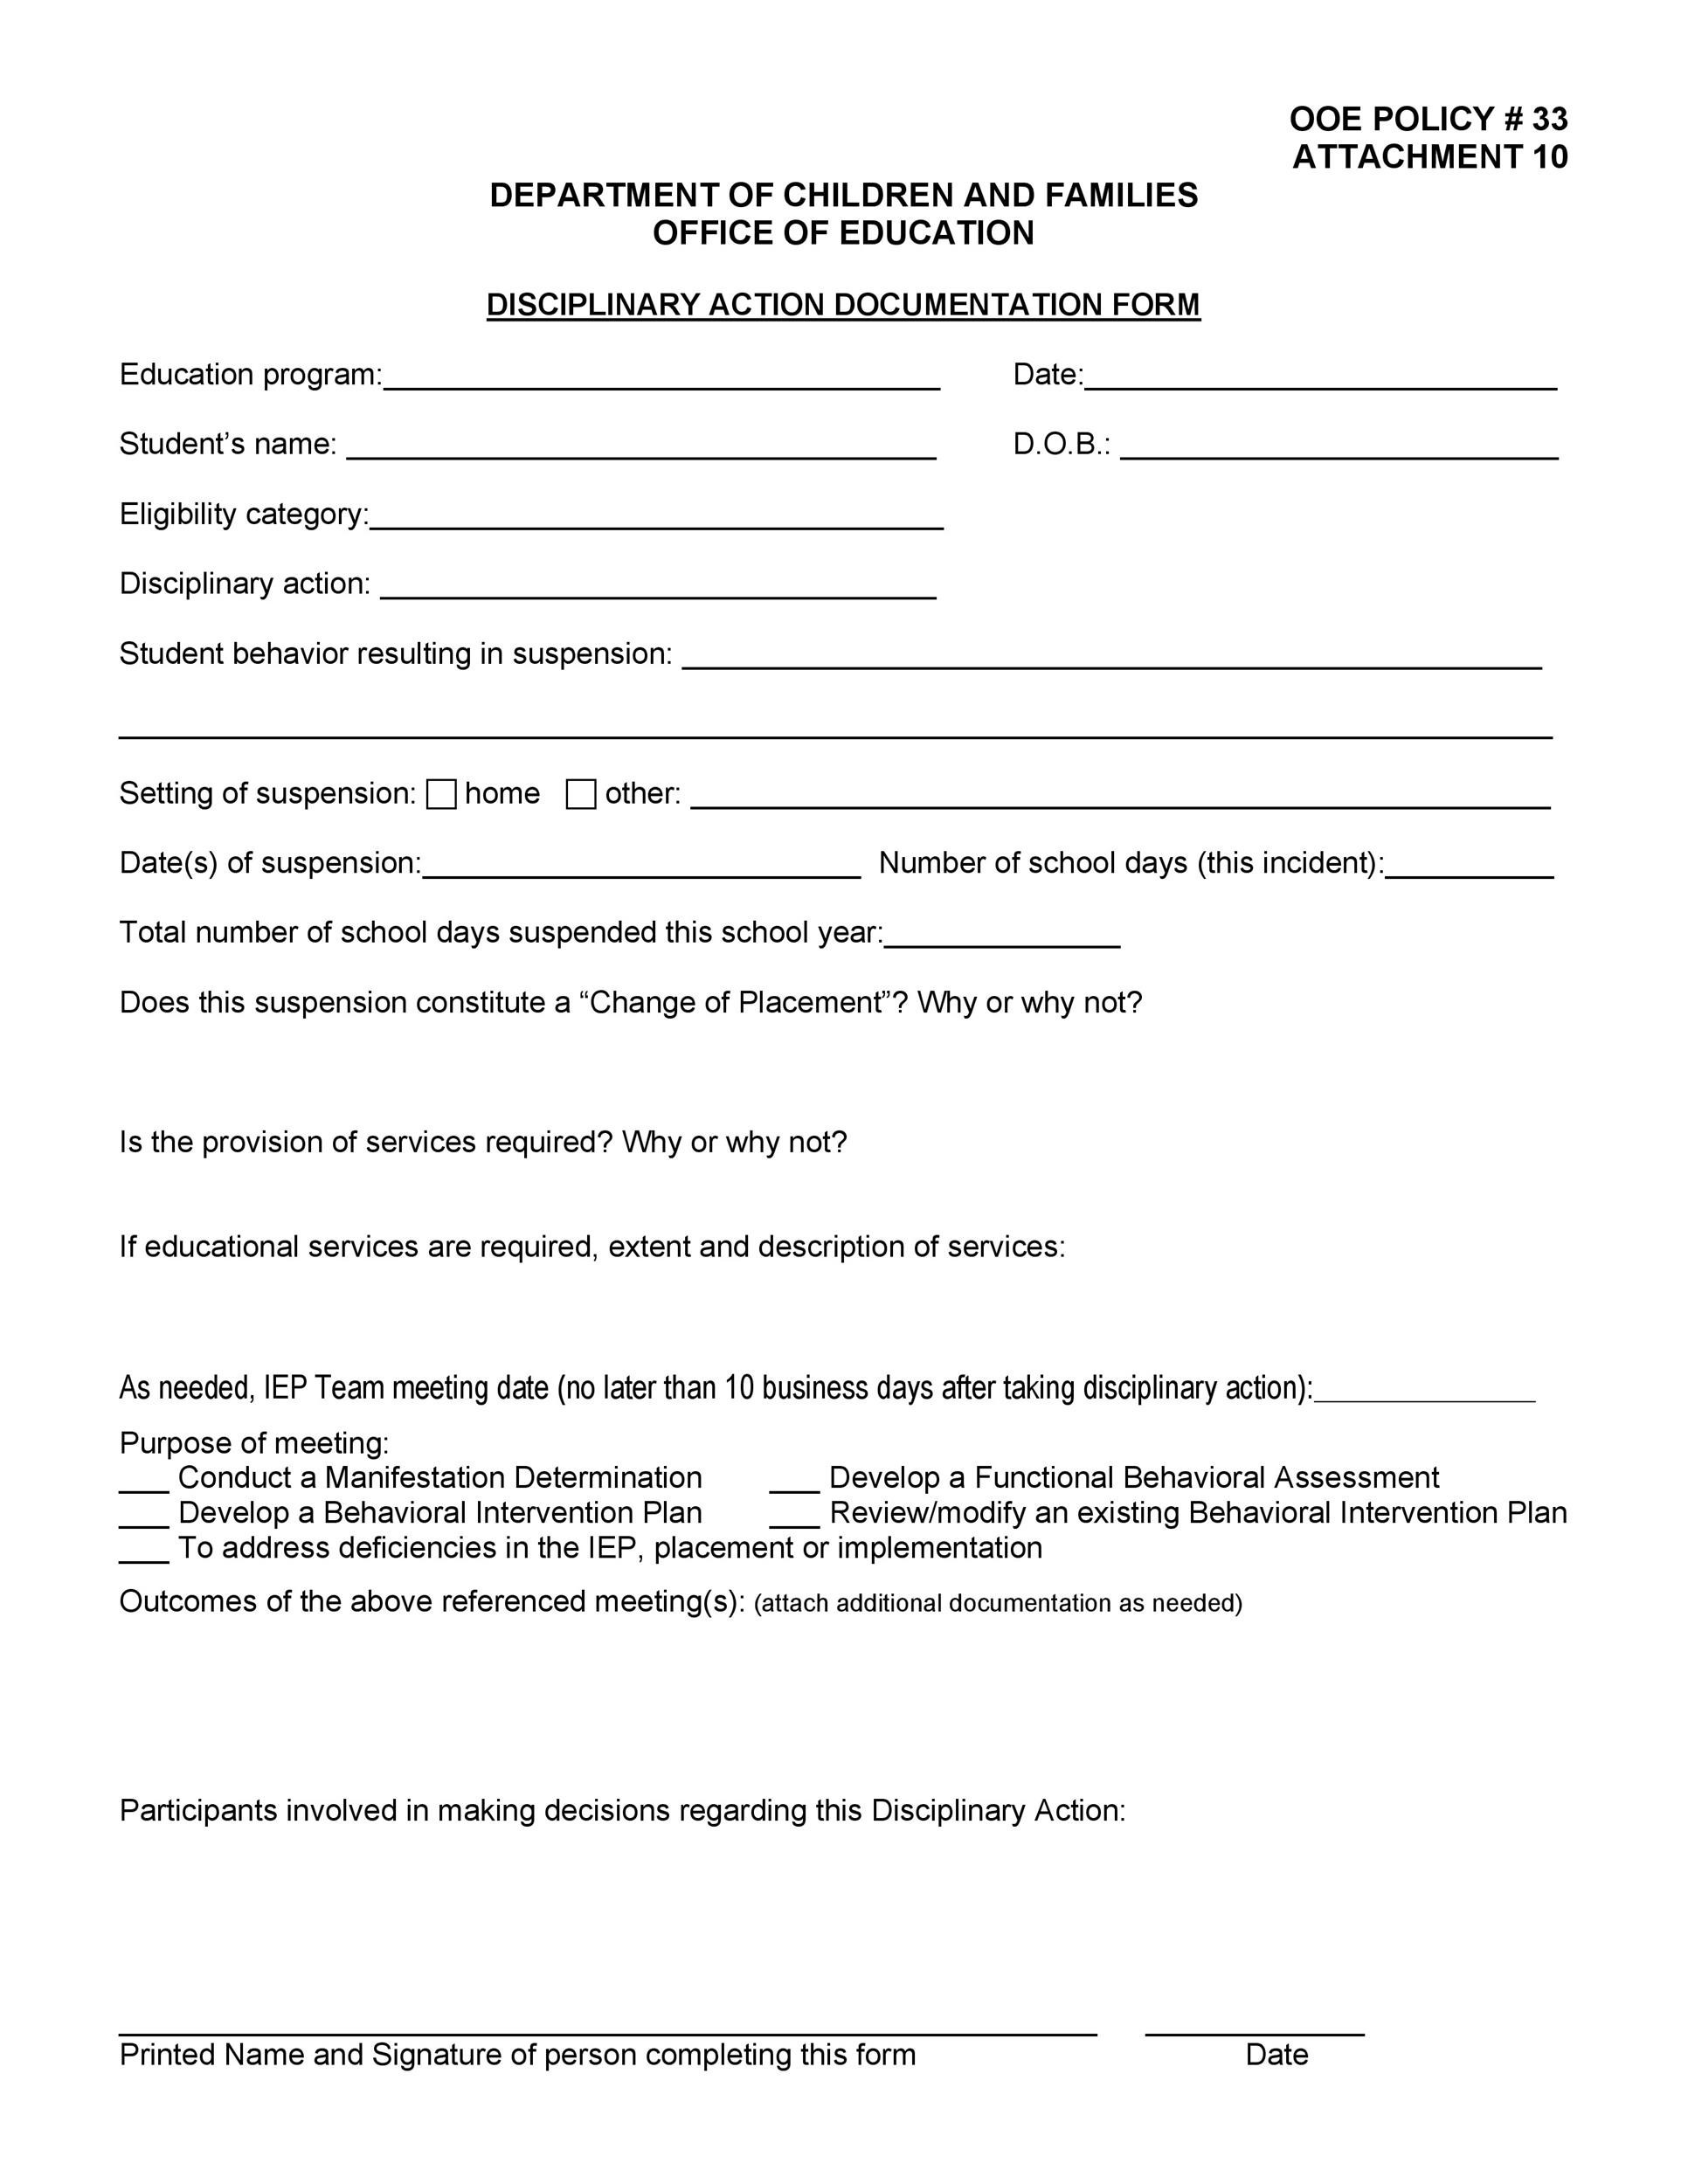 Employee Write Up Form Downloadable Printable Wordpdf 46 Effective Employee Write Up Forms Disciplinary